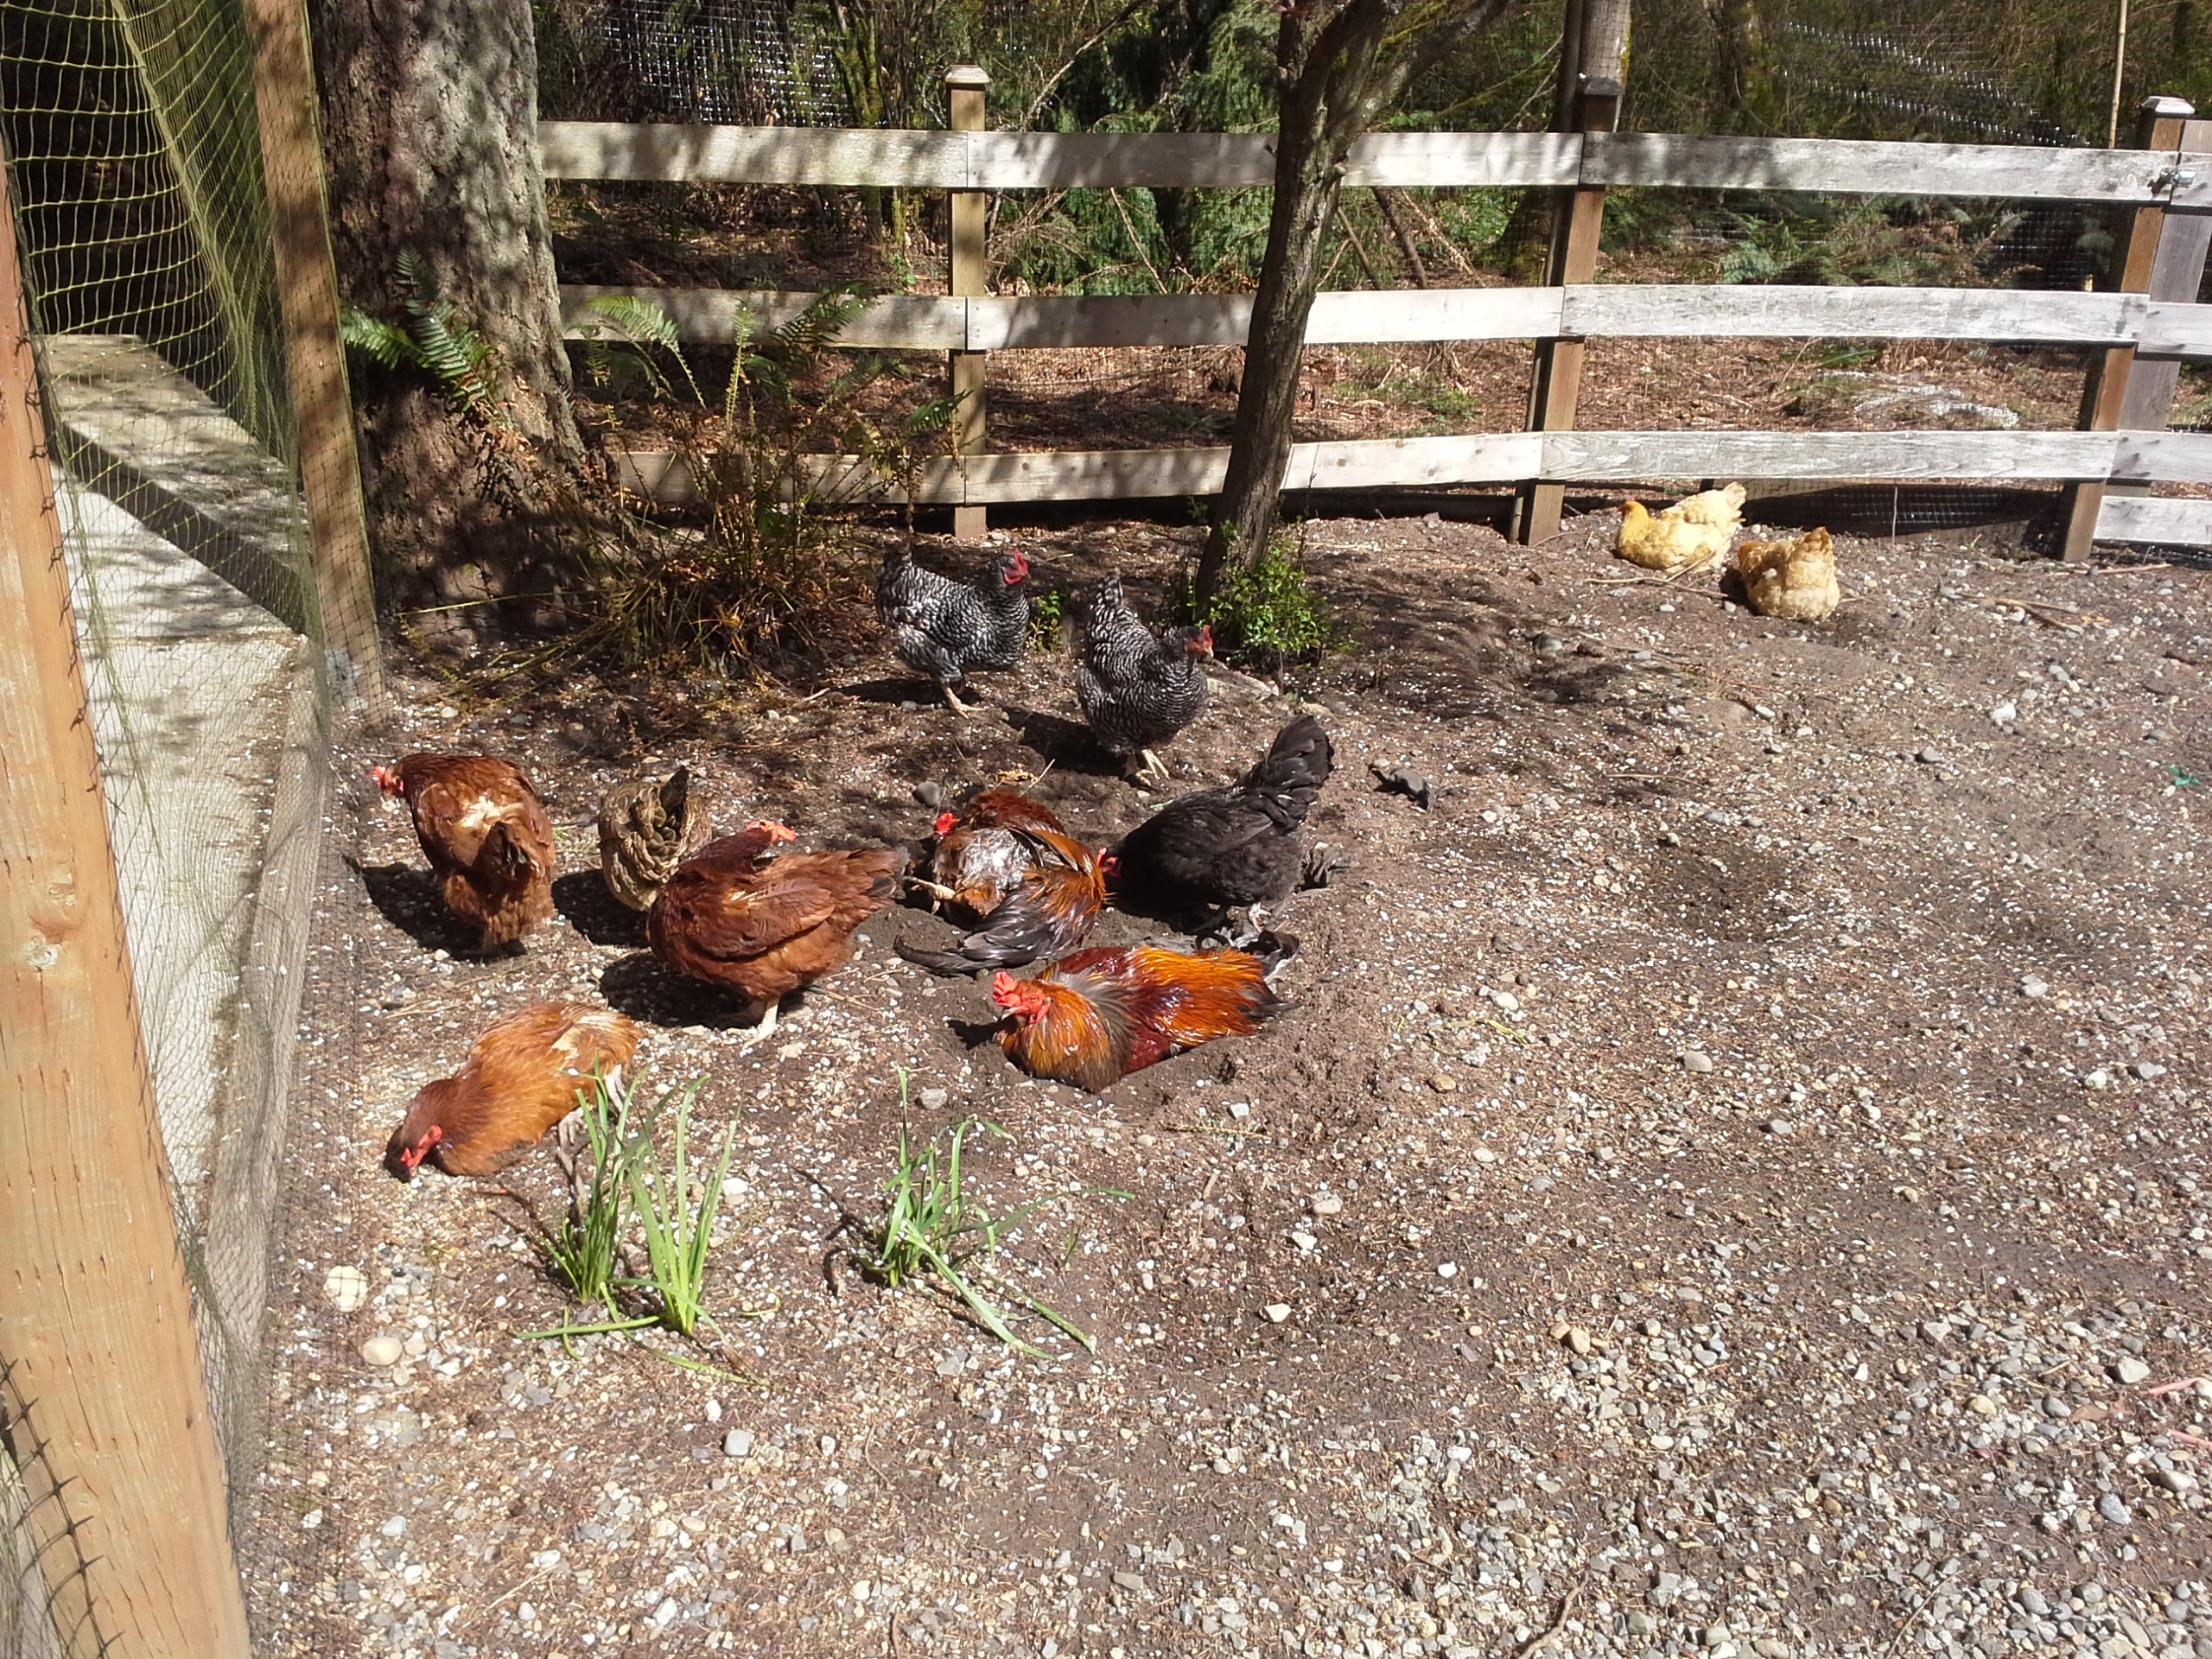 The chickens did a lot of lounging, too. We had glorious weather here, thankfully. Near 60 degrees and sunny 4 out of 5 days!